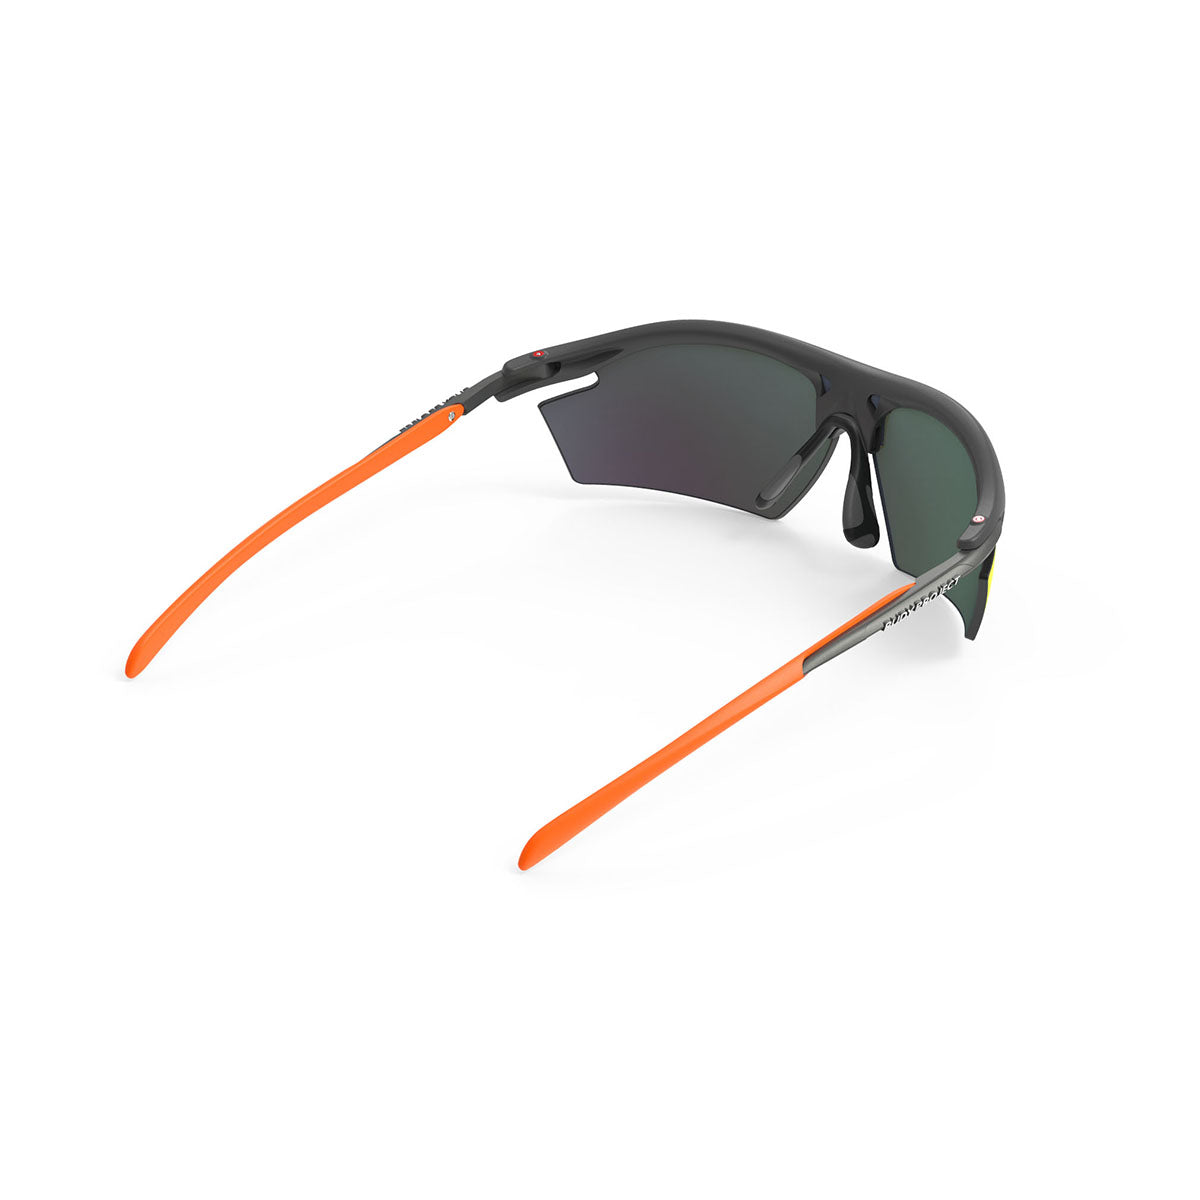 Rudy Project - Rydon - frame color: Graphite Multicolor Orange - lens color: Multilaser Orange - photo angle: Top Back Angle Variant Hover Image